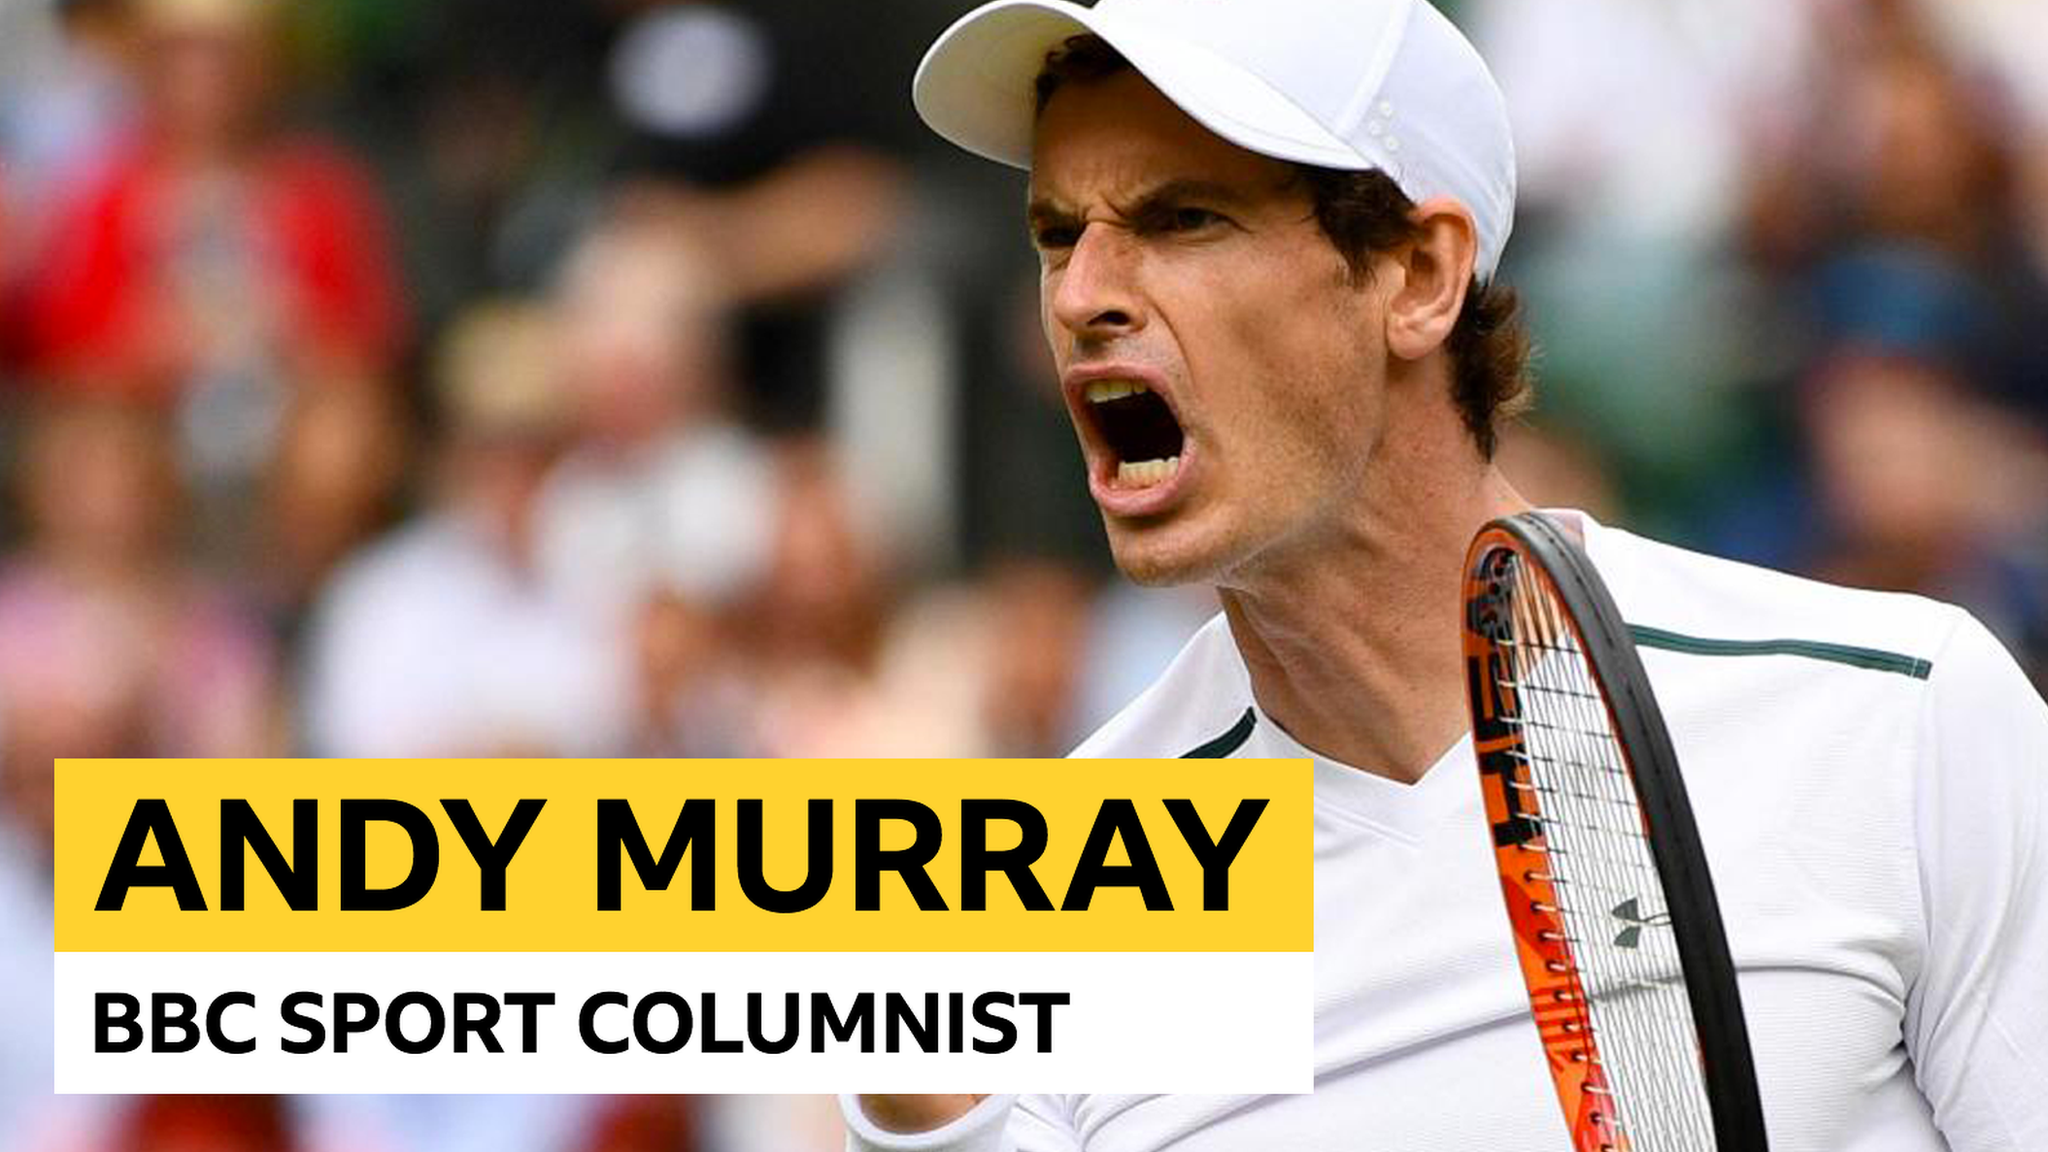 'How I've recovered from lowest point' - Murray on his return after almost a year out